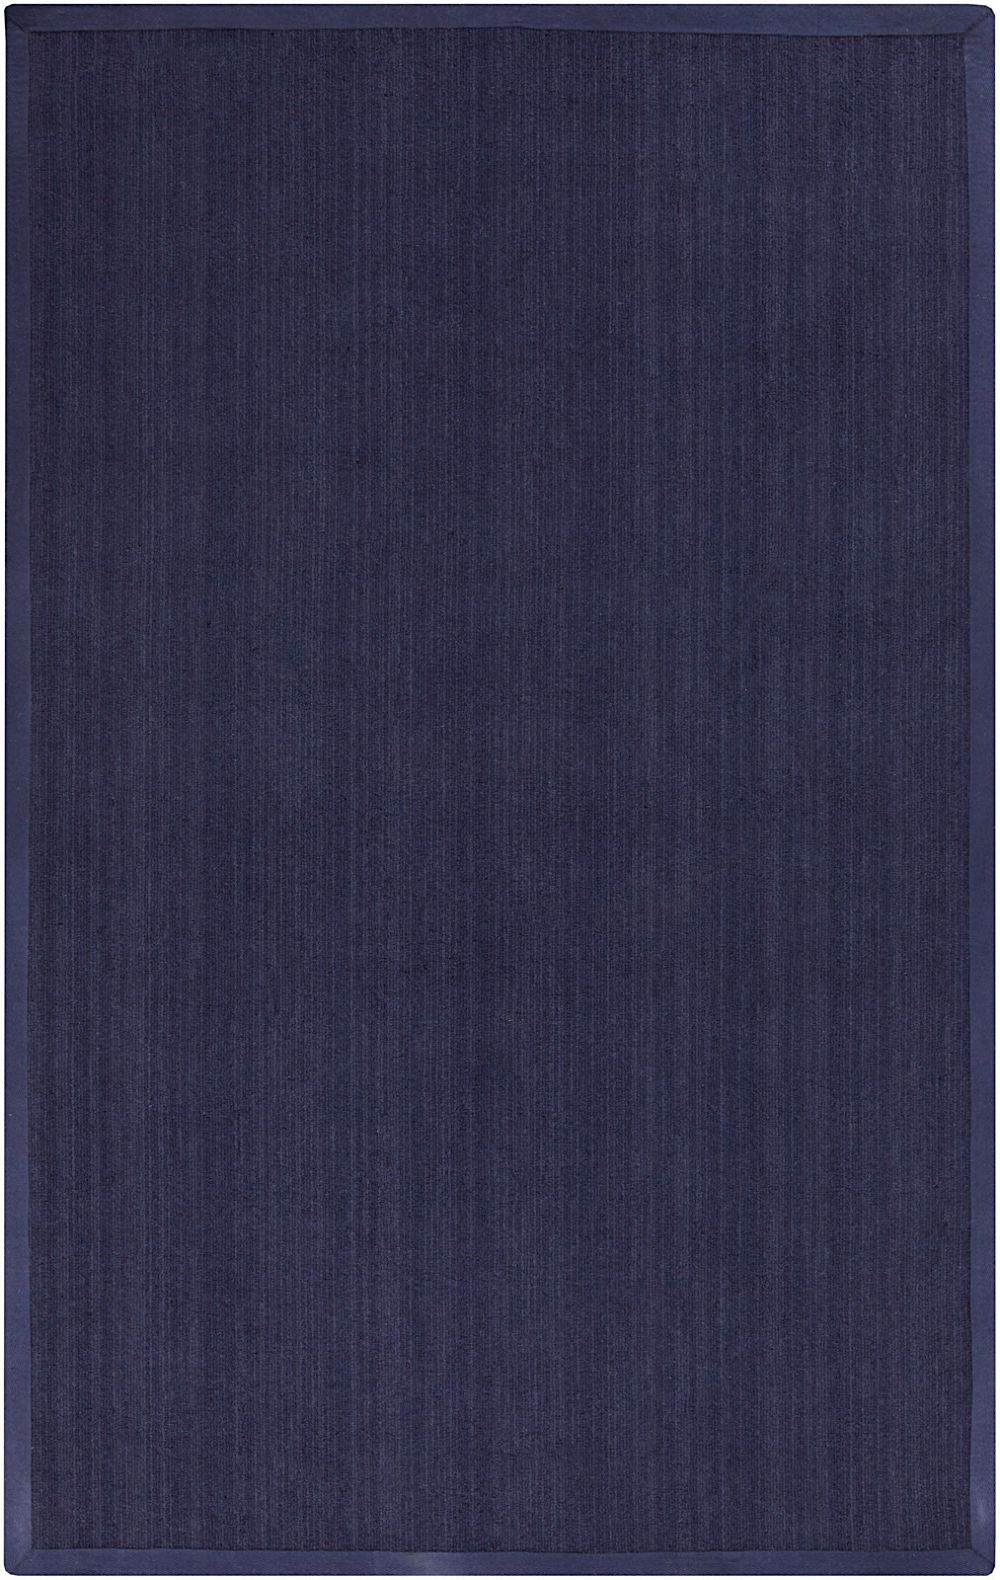 surya perry solid/striped area rug collection